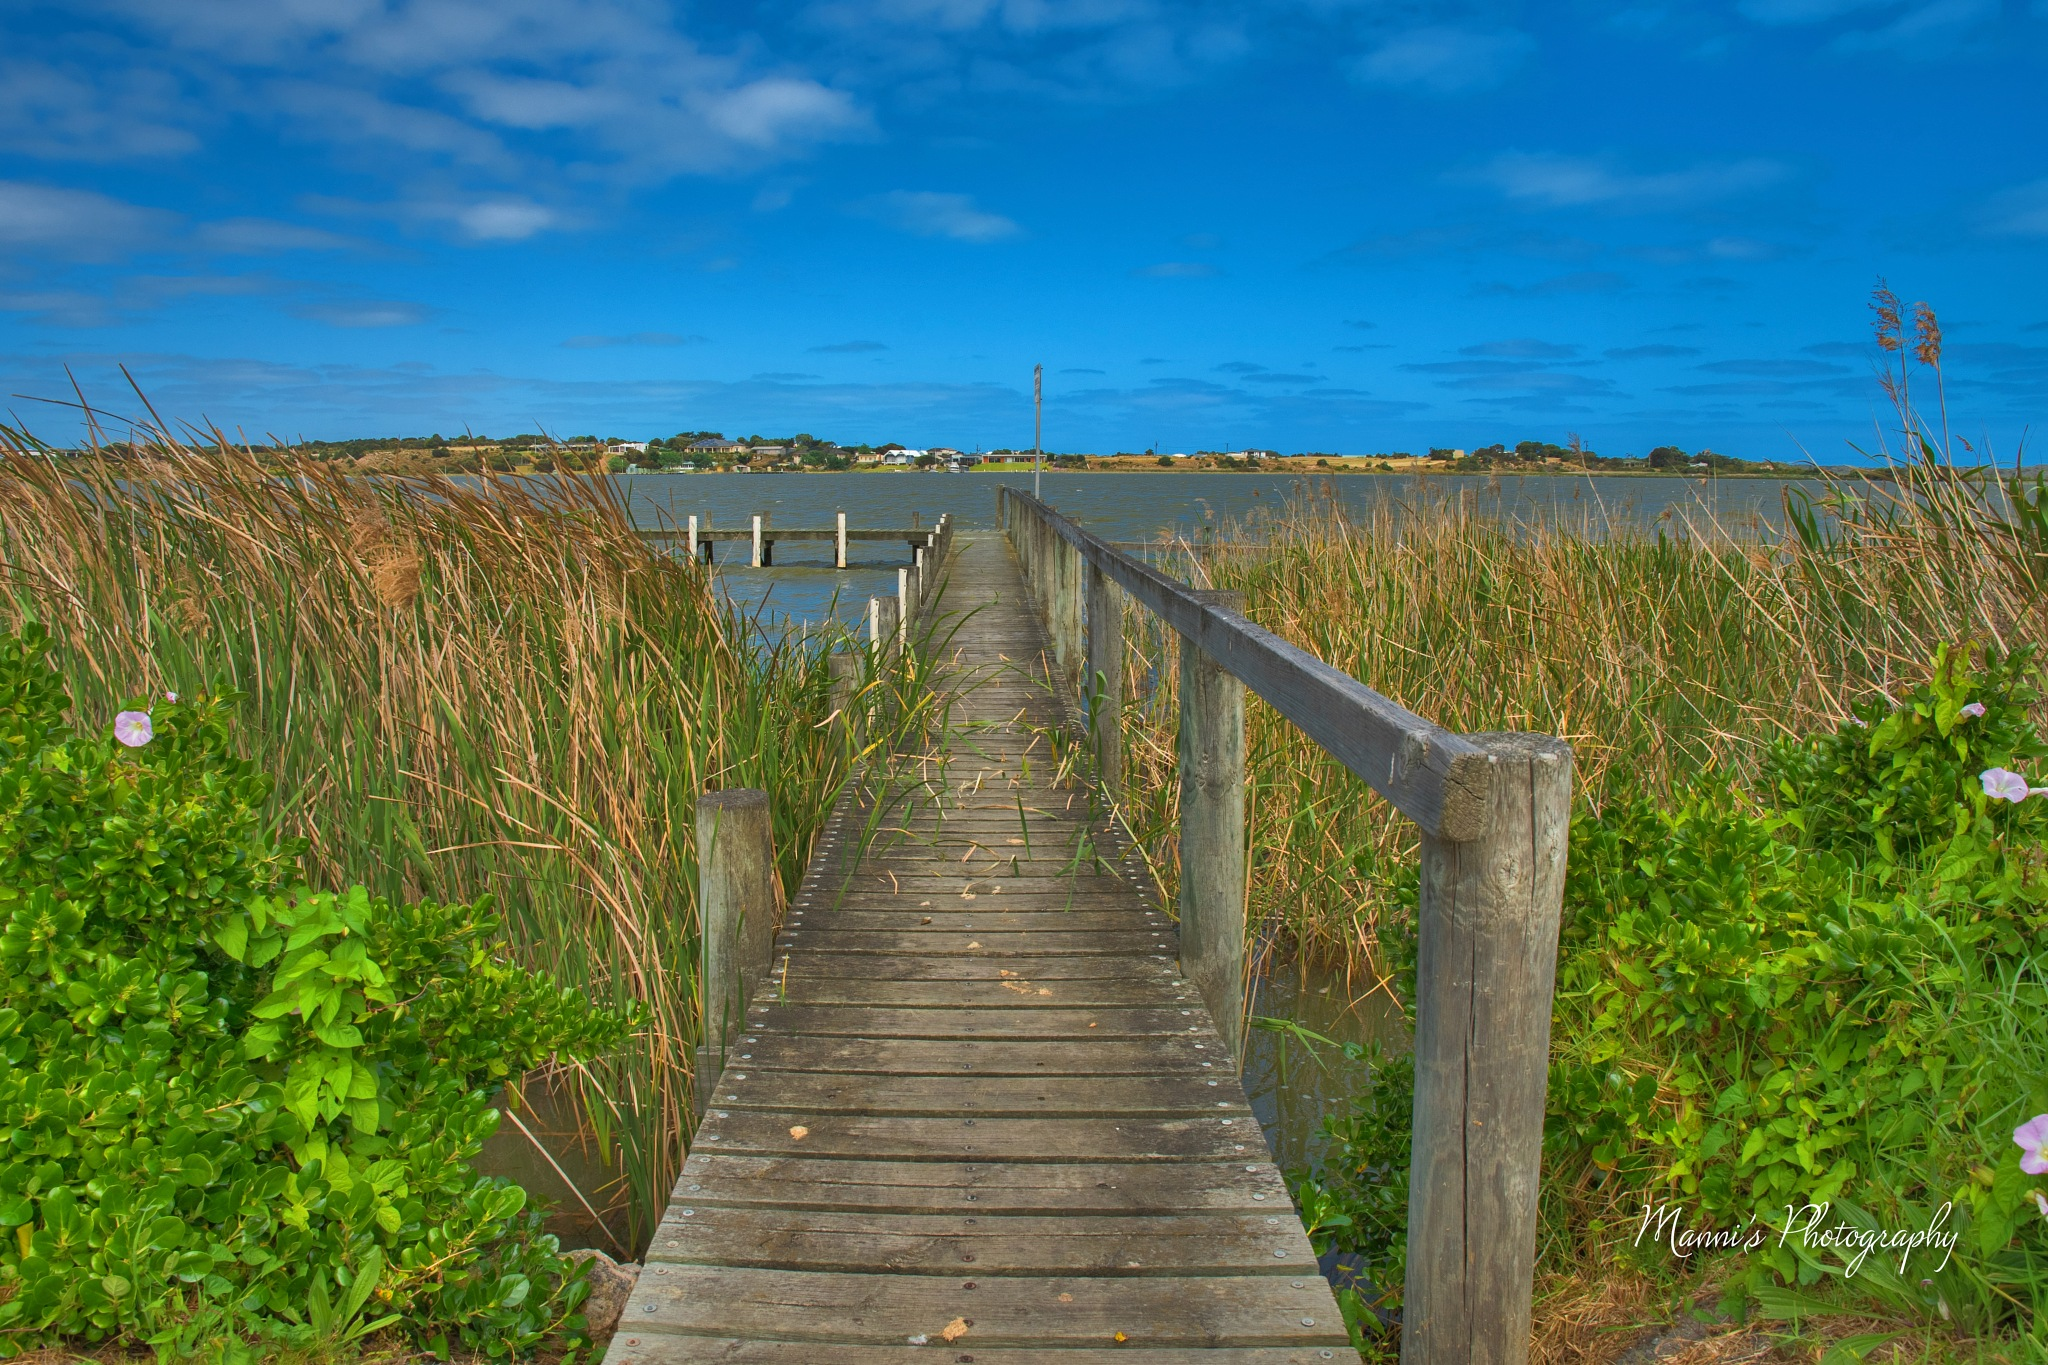 Jetty by Manni